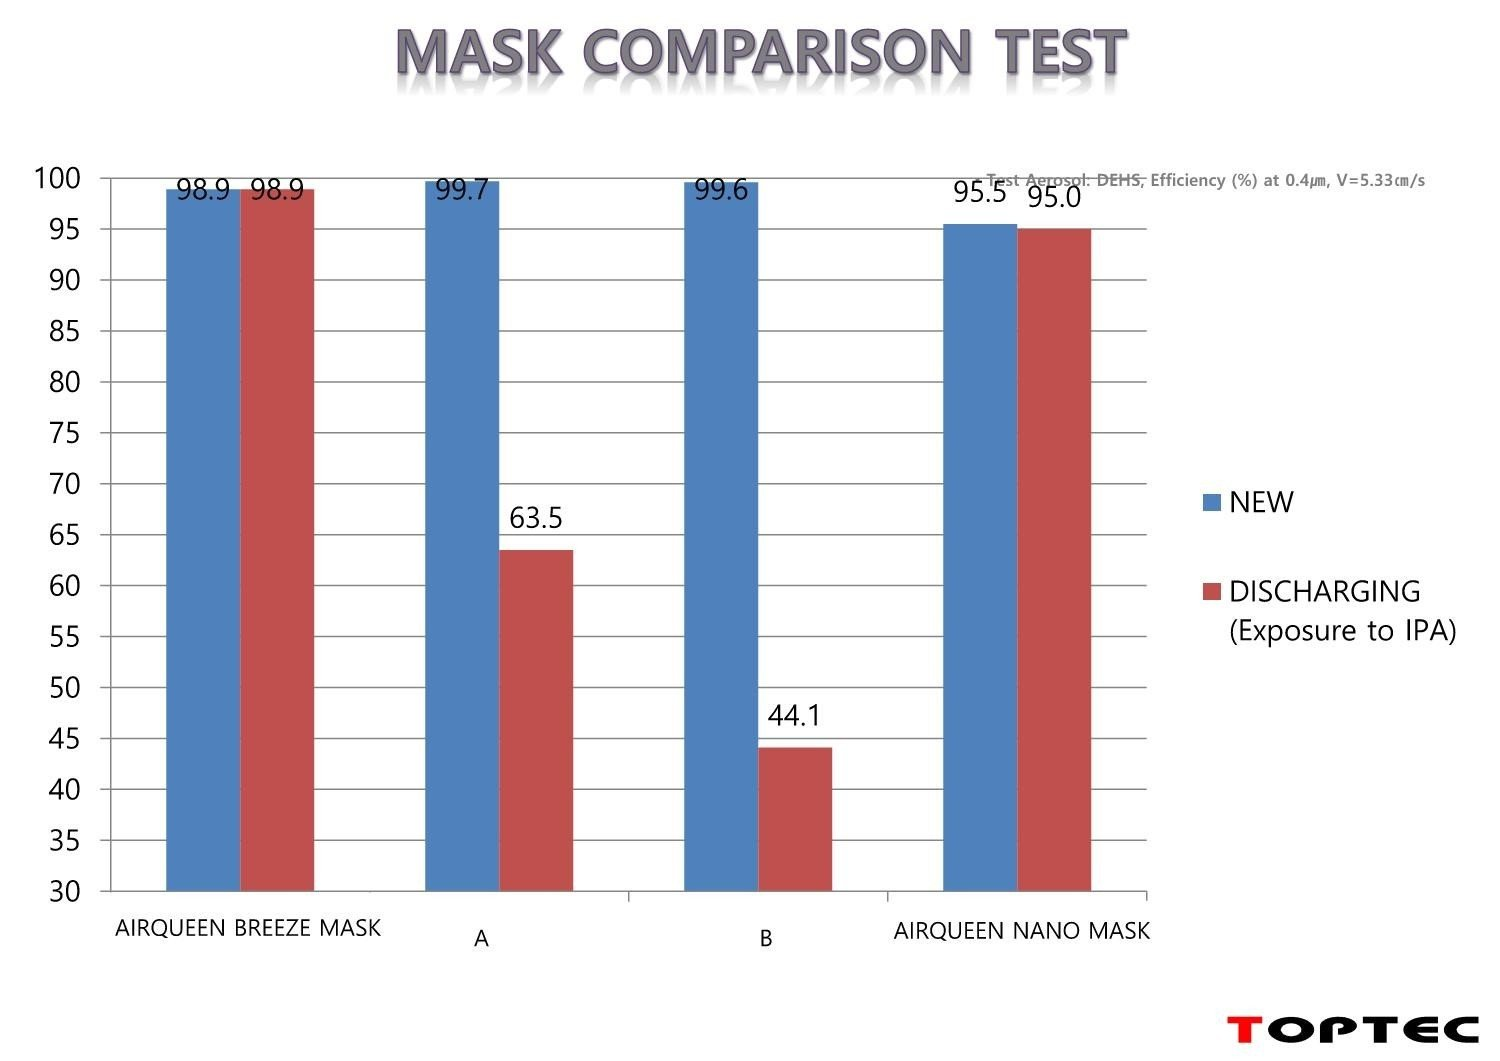 airqueen breeze mask compare to air queen nano mask